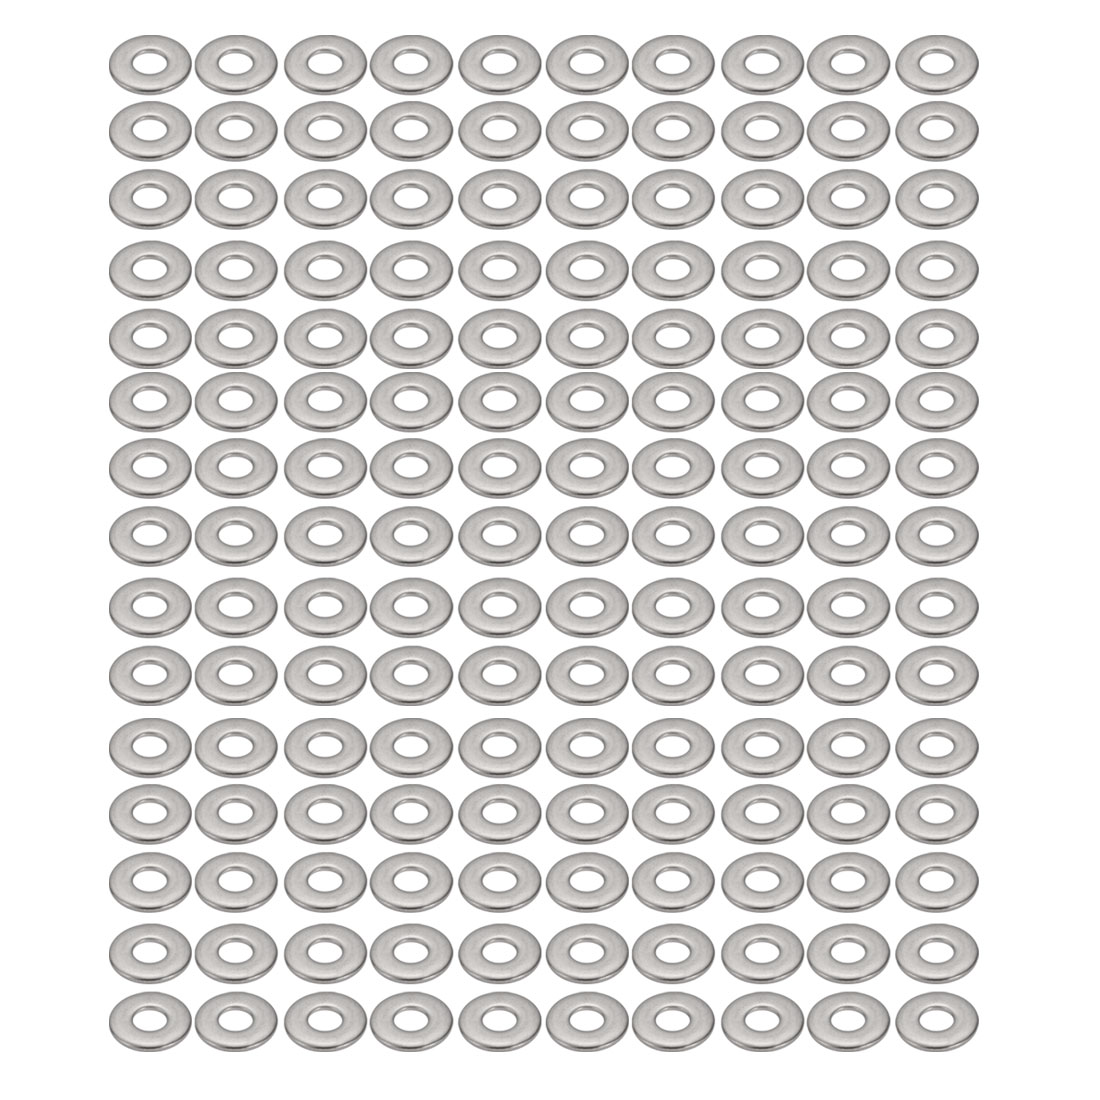 M3x9mmx0.8mm DIN9021 304 Stainless Steel Flat Washer Silver Tone 150pcs